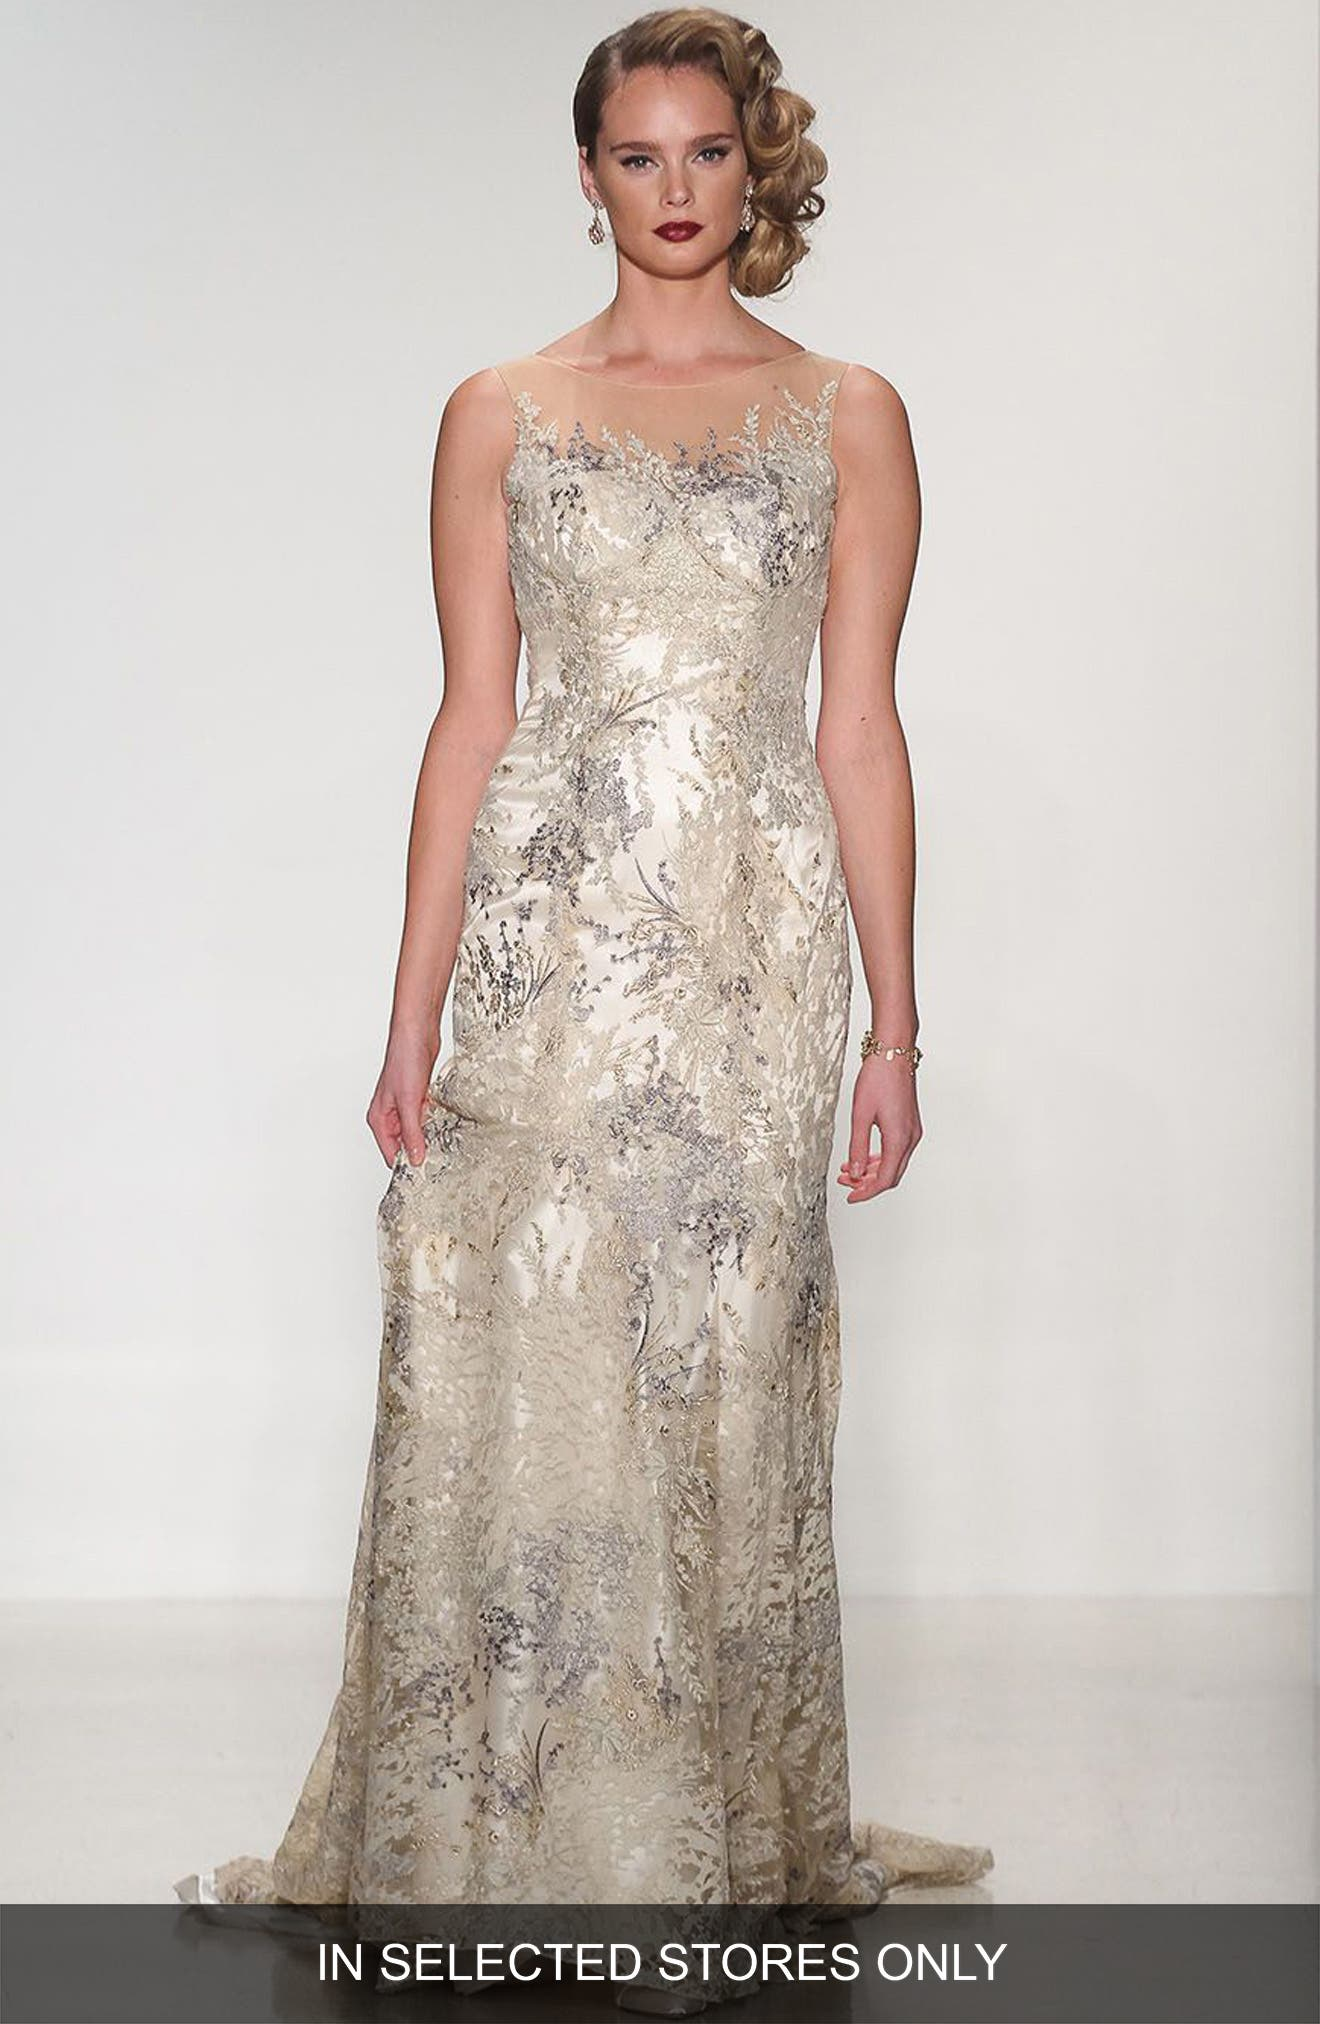 Thyme Sleeveless Illusion Embroidered Lace Gown,                         Main,                         color, Champagne/Offwhite